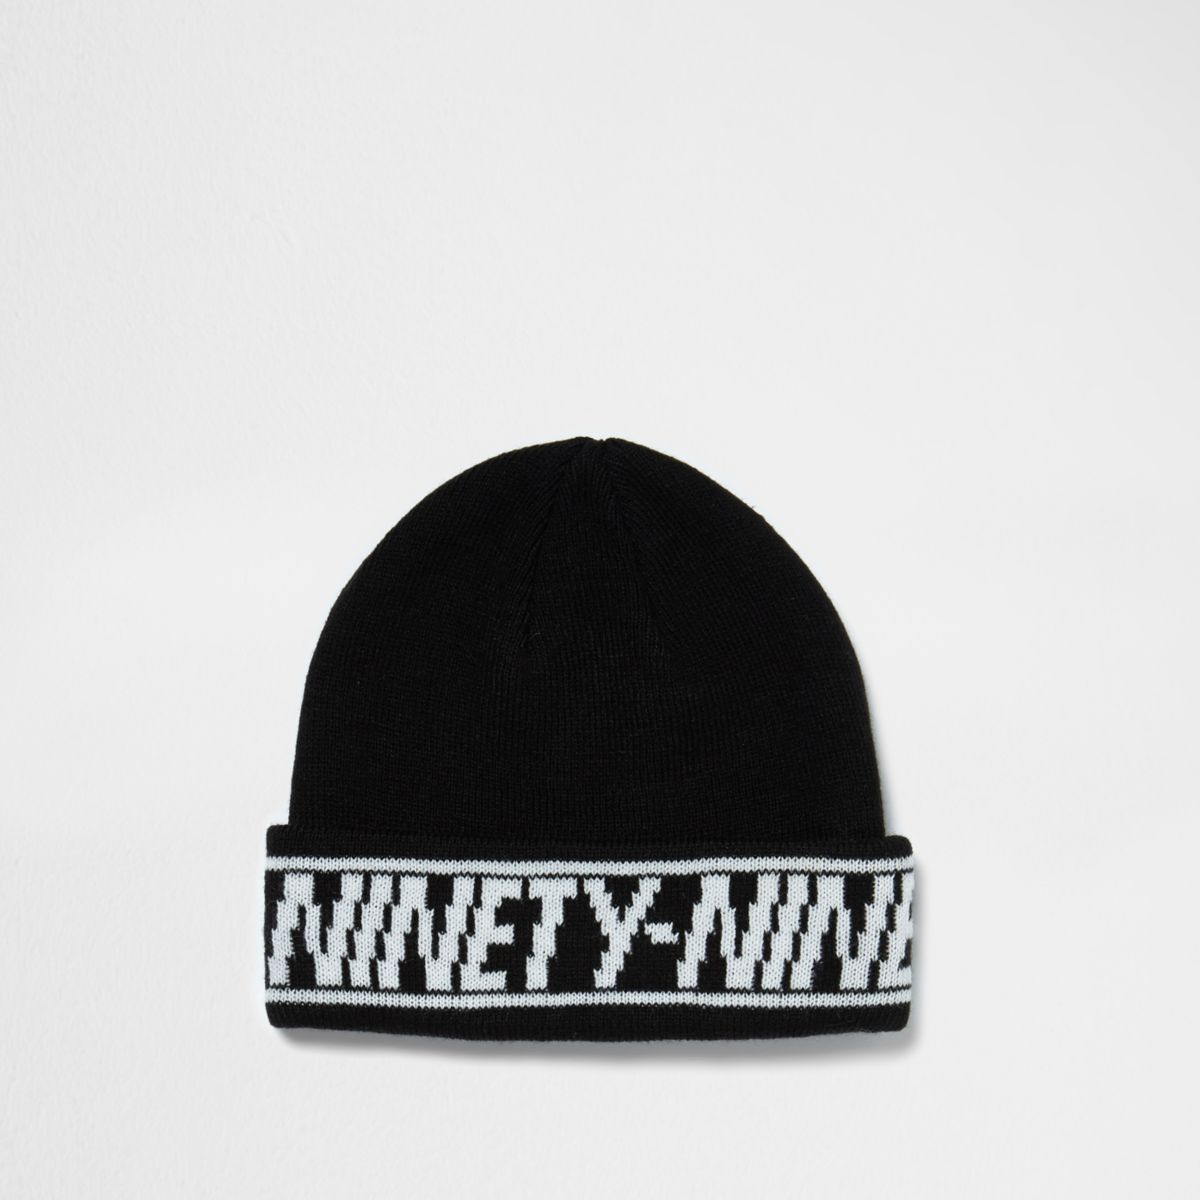 Black 'ninety nine' hem fisherman beanie hat